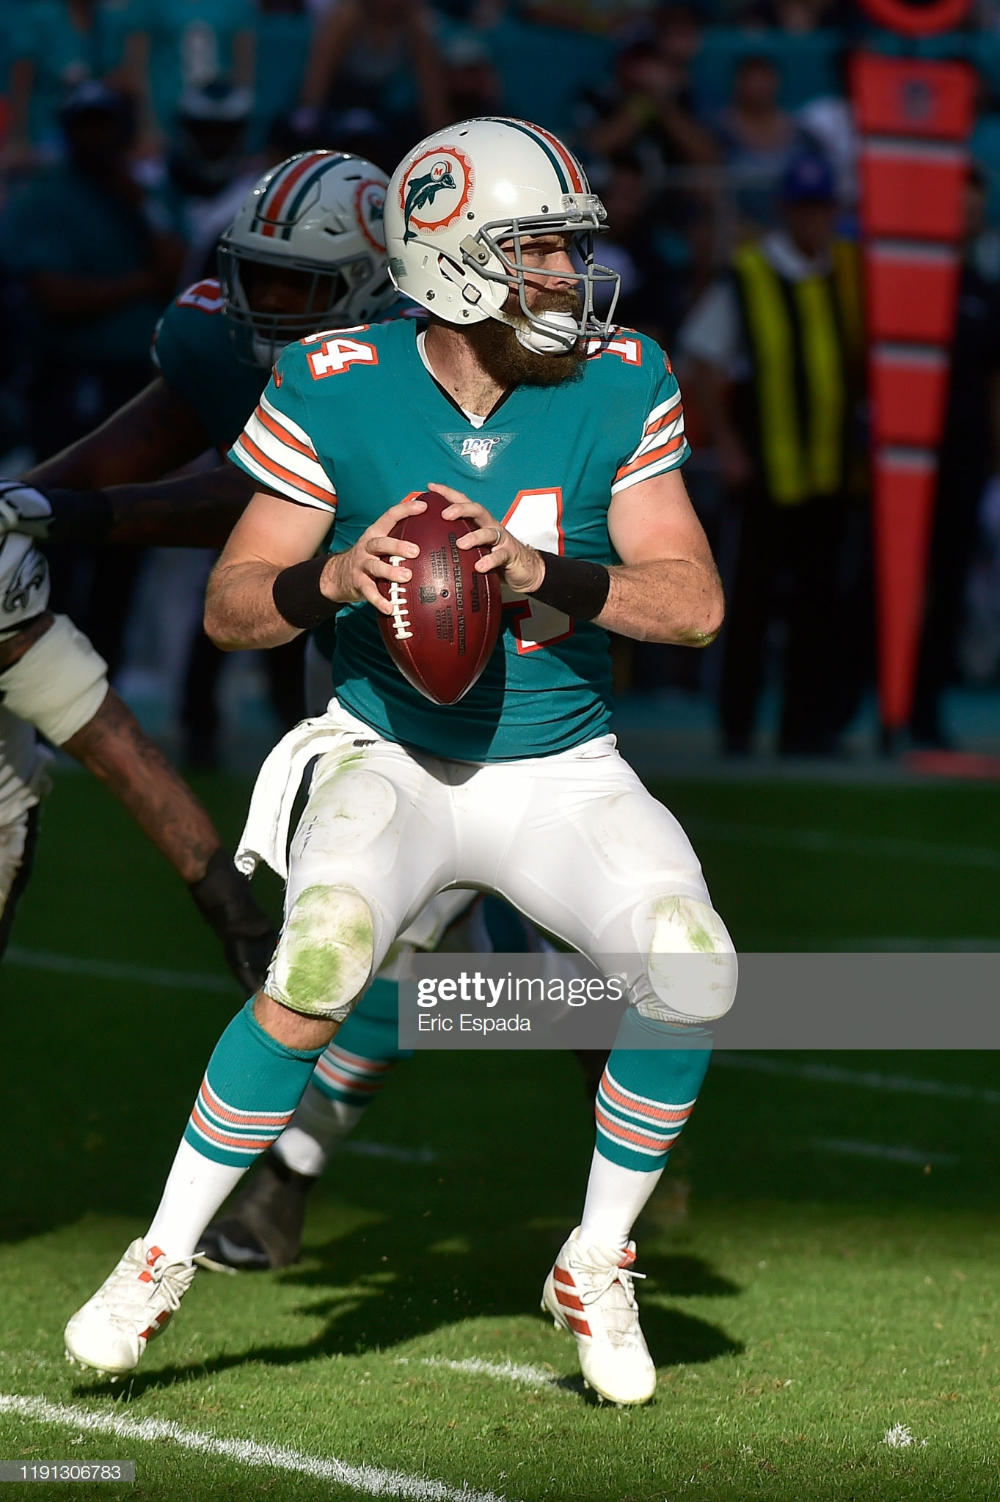 Ryan Fitzpatrick Of The Miami Dolphins Drops Back To Pass During The Dolphins Miami Dolphins Miami Dolphins Football